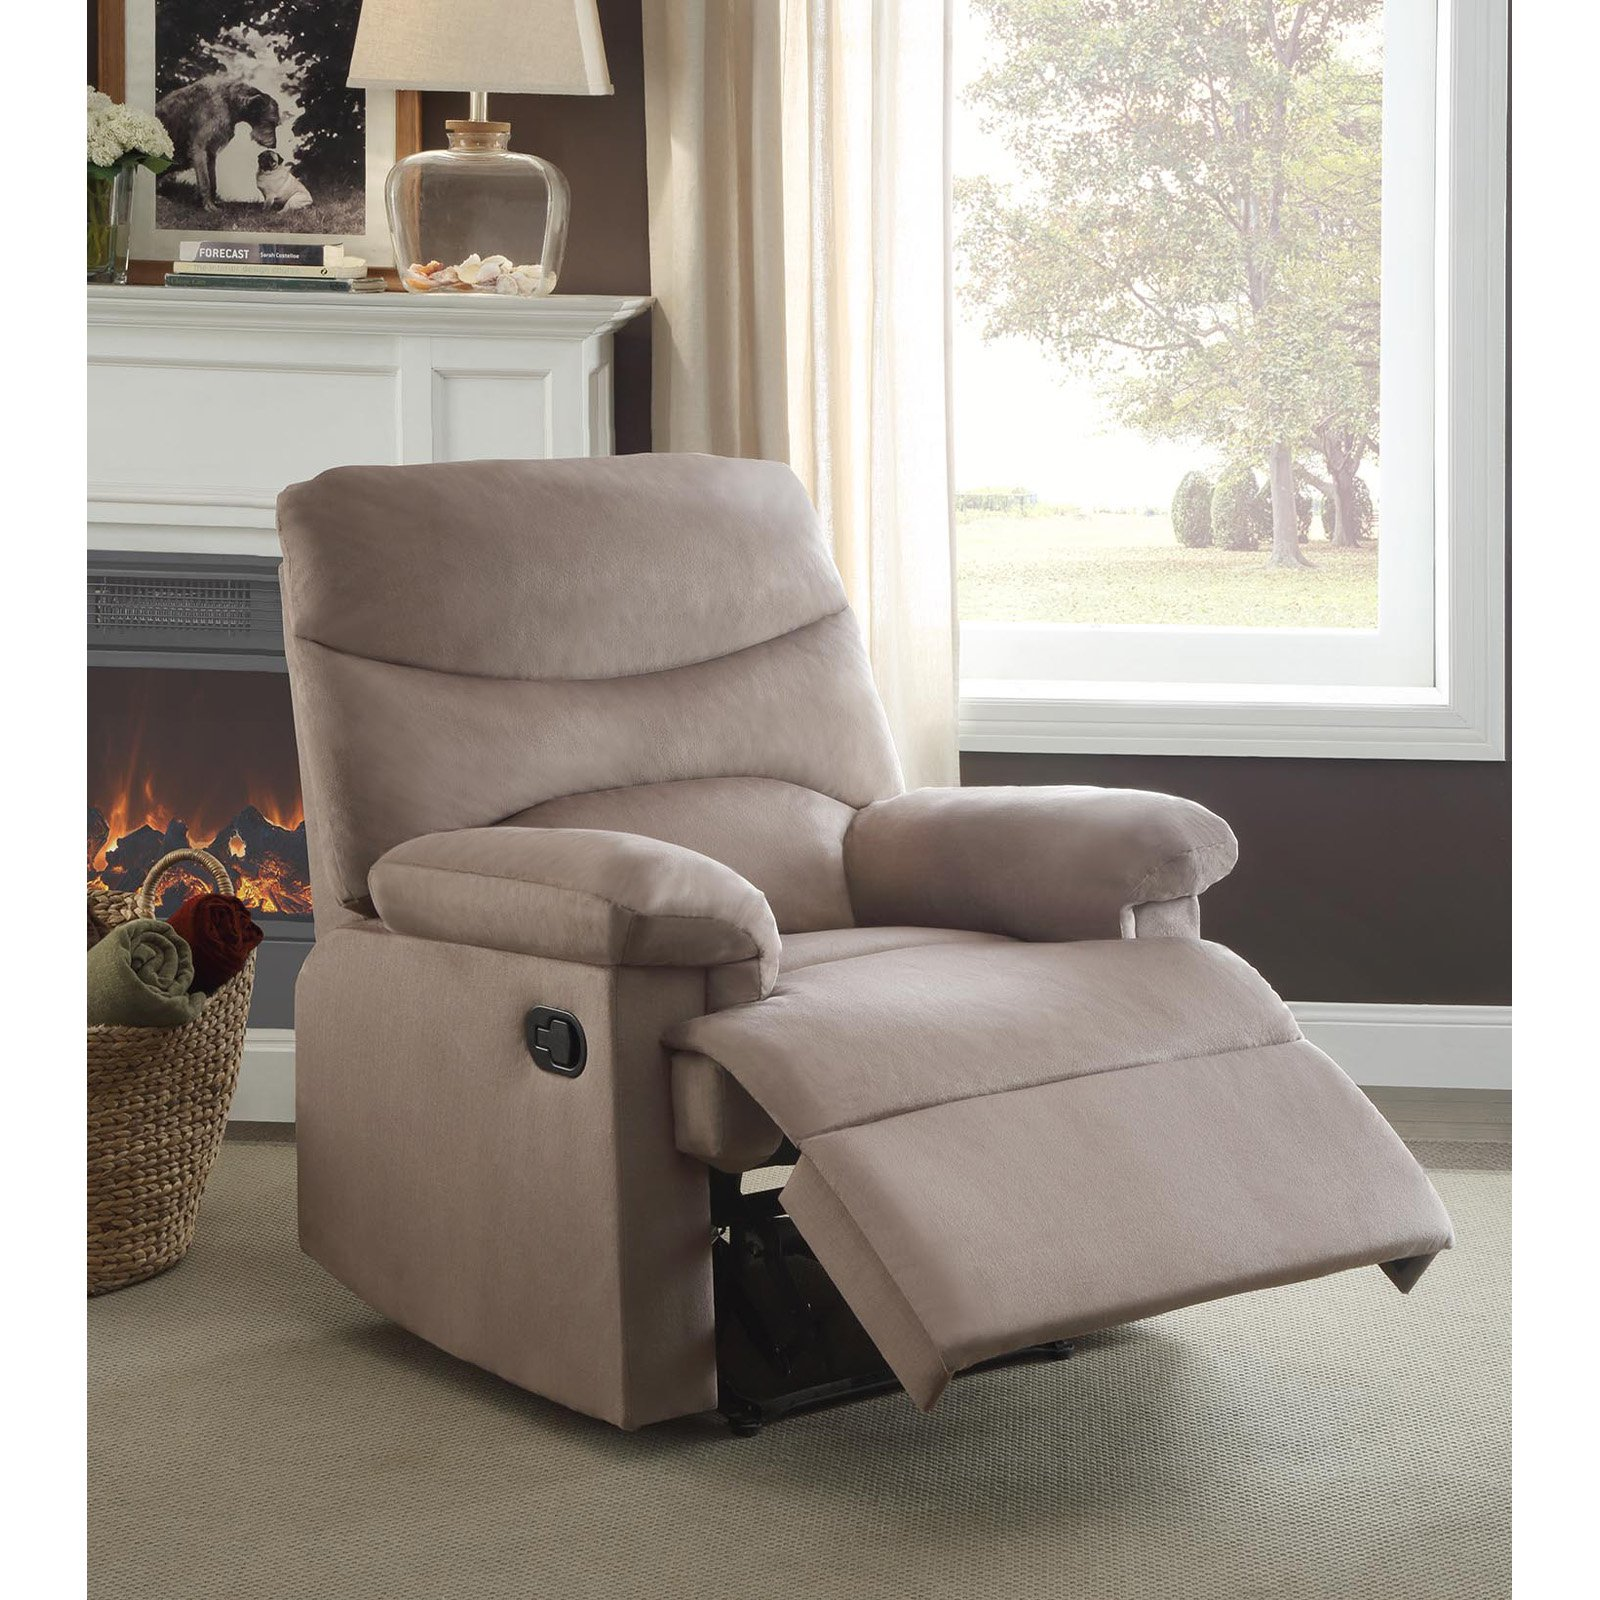 ACME Arcadia Recliner, Blue Woven Fabric by Acme Furniture